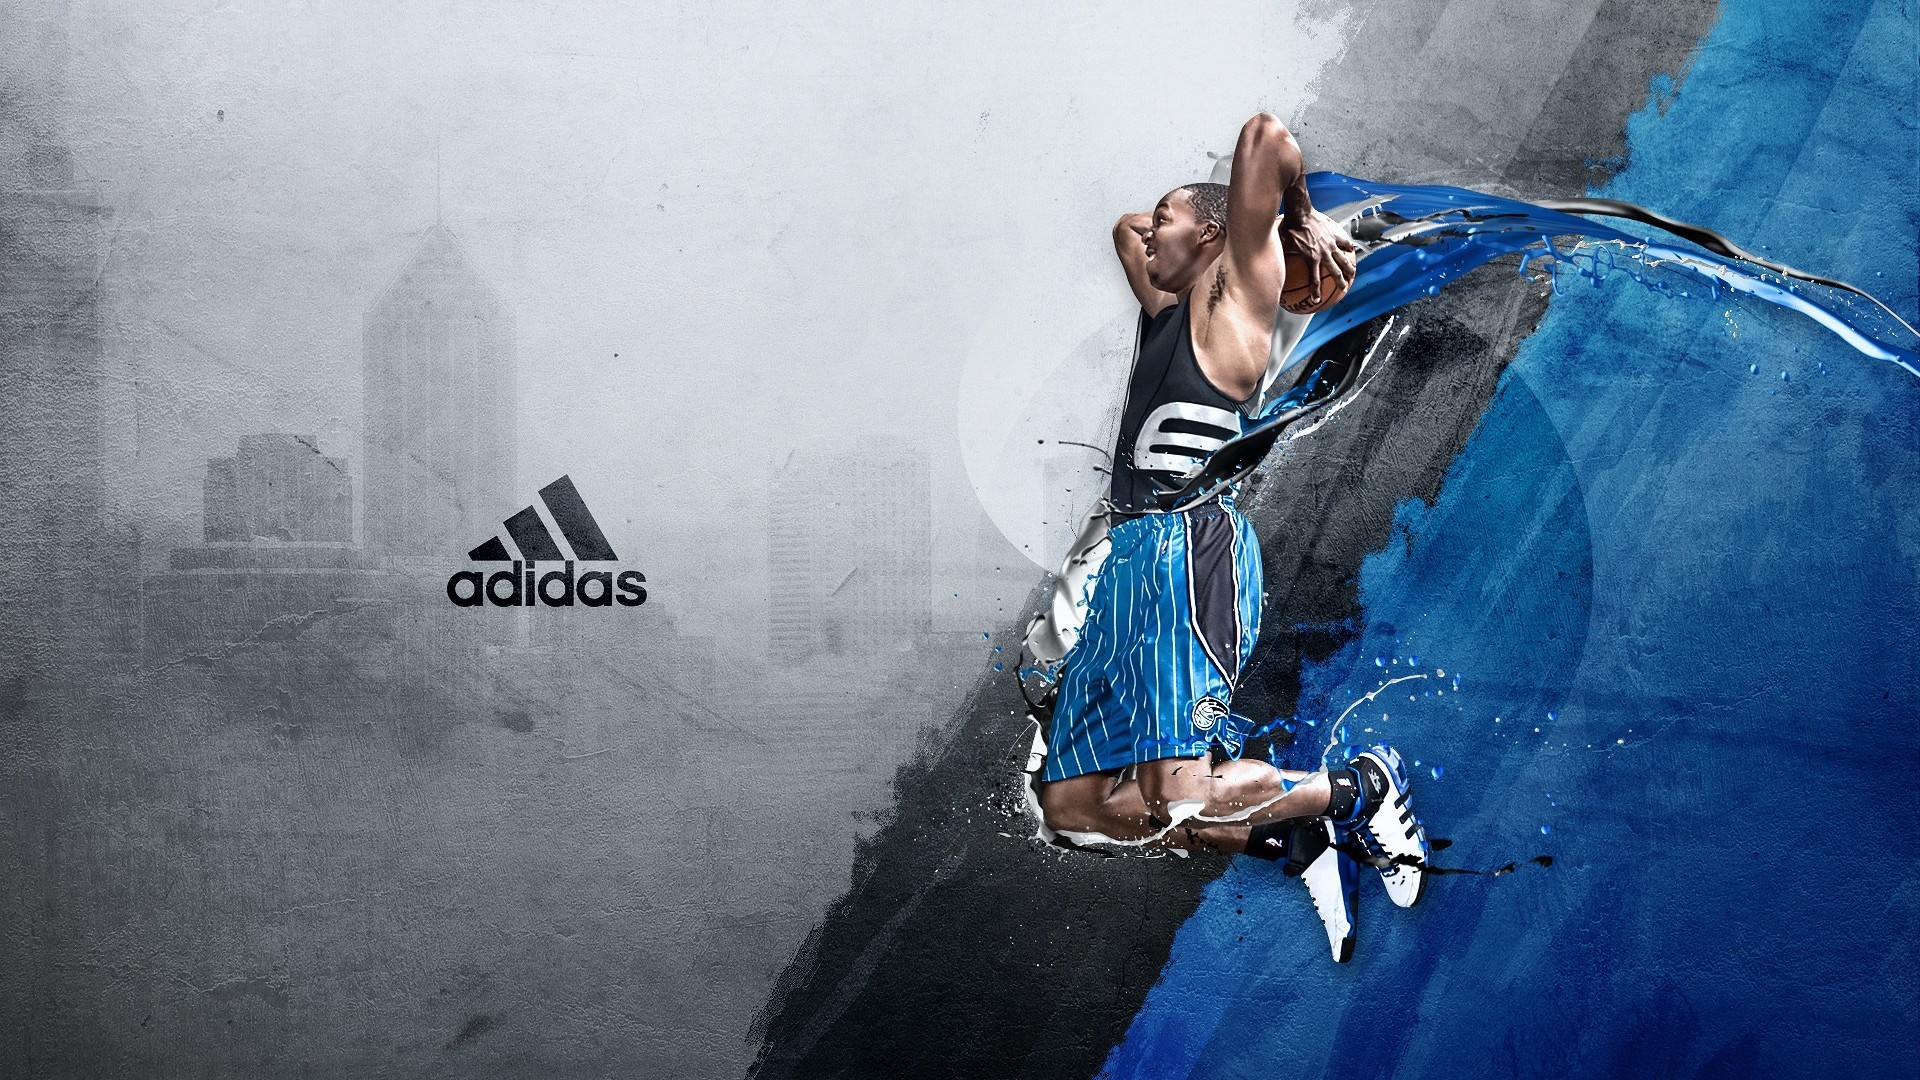 Top 10 Sports Wallpapers 2012 Risen Sources 1920x1080